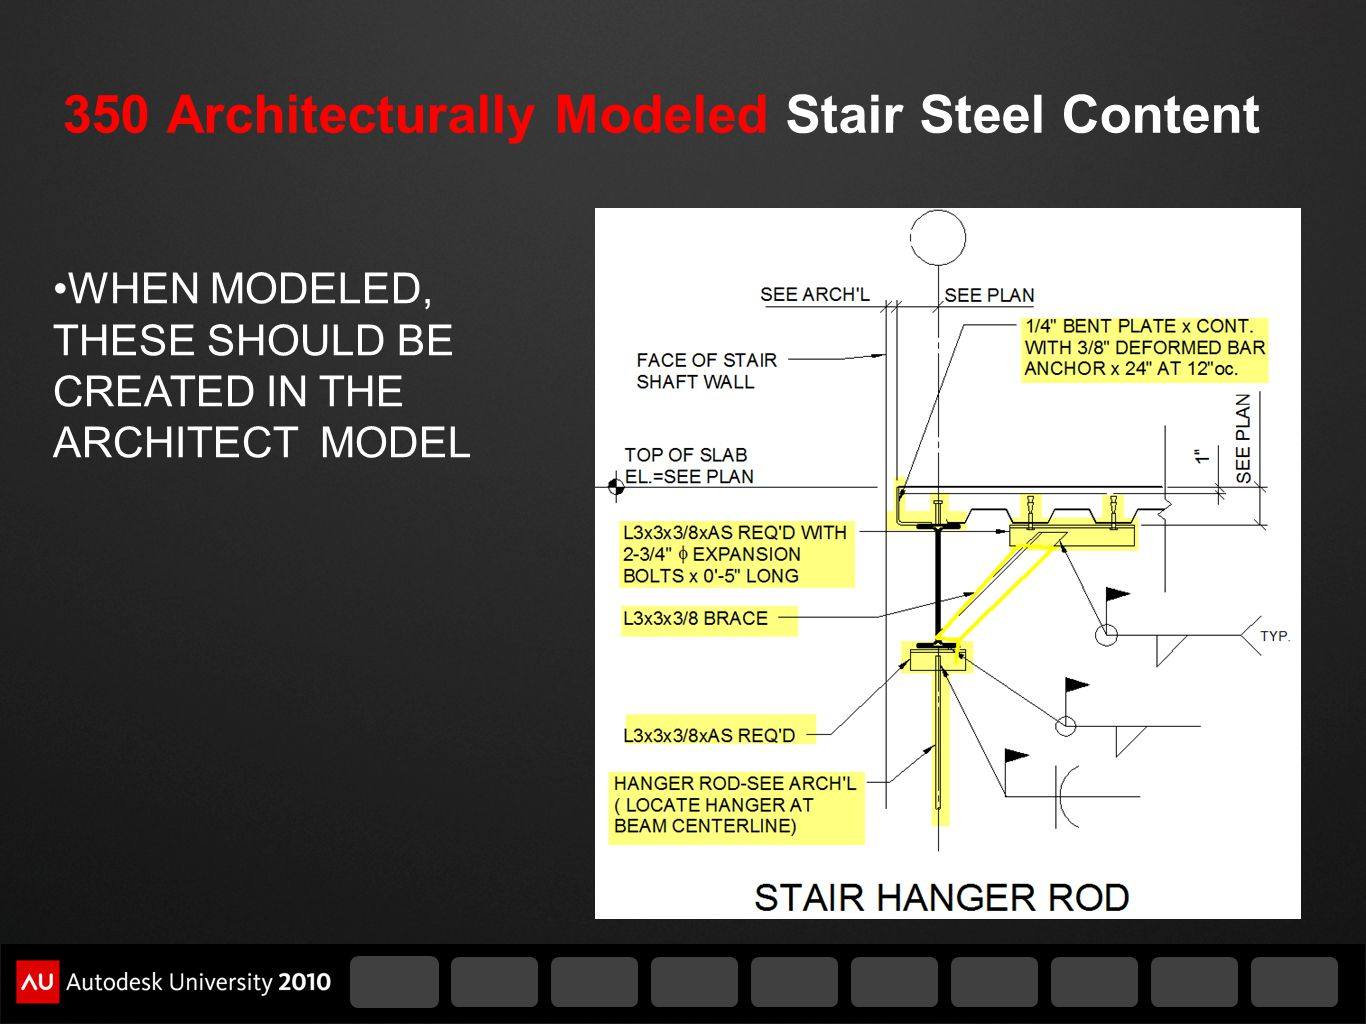 350 Architecturally Modeled Stair Steel Content